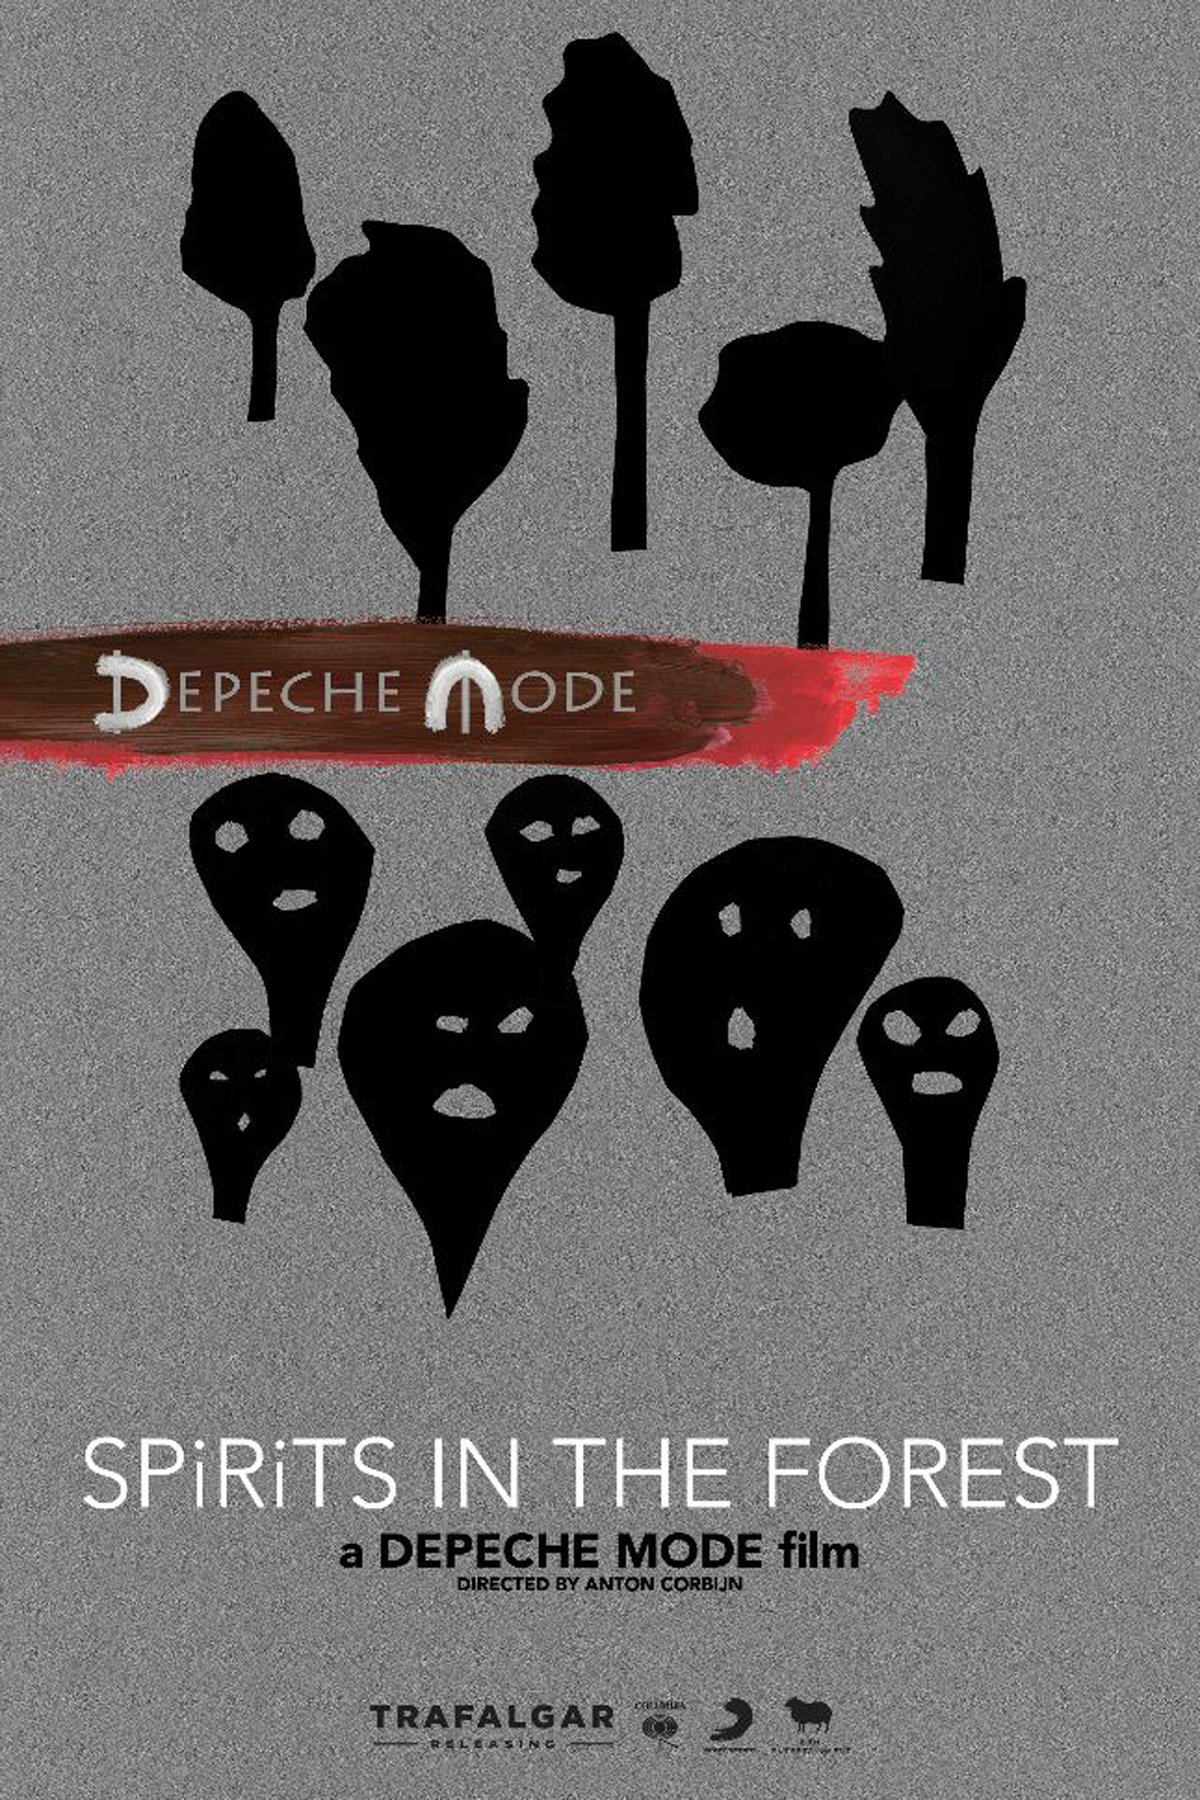 SPIRITS IN THE FOREST EL DOCUMENTAL DE DEPECHE MODE YA SE ENCUENTRA DISPONIBLE A TRAVÉS DE AMAZON PRIME VIDEO